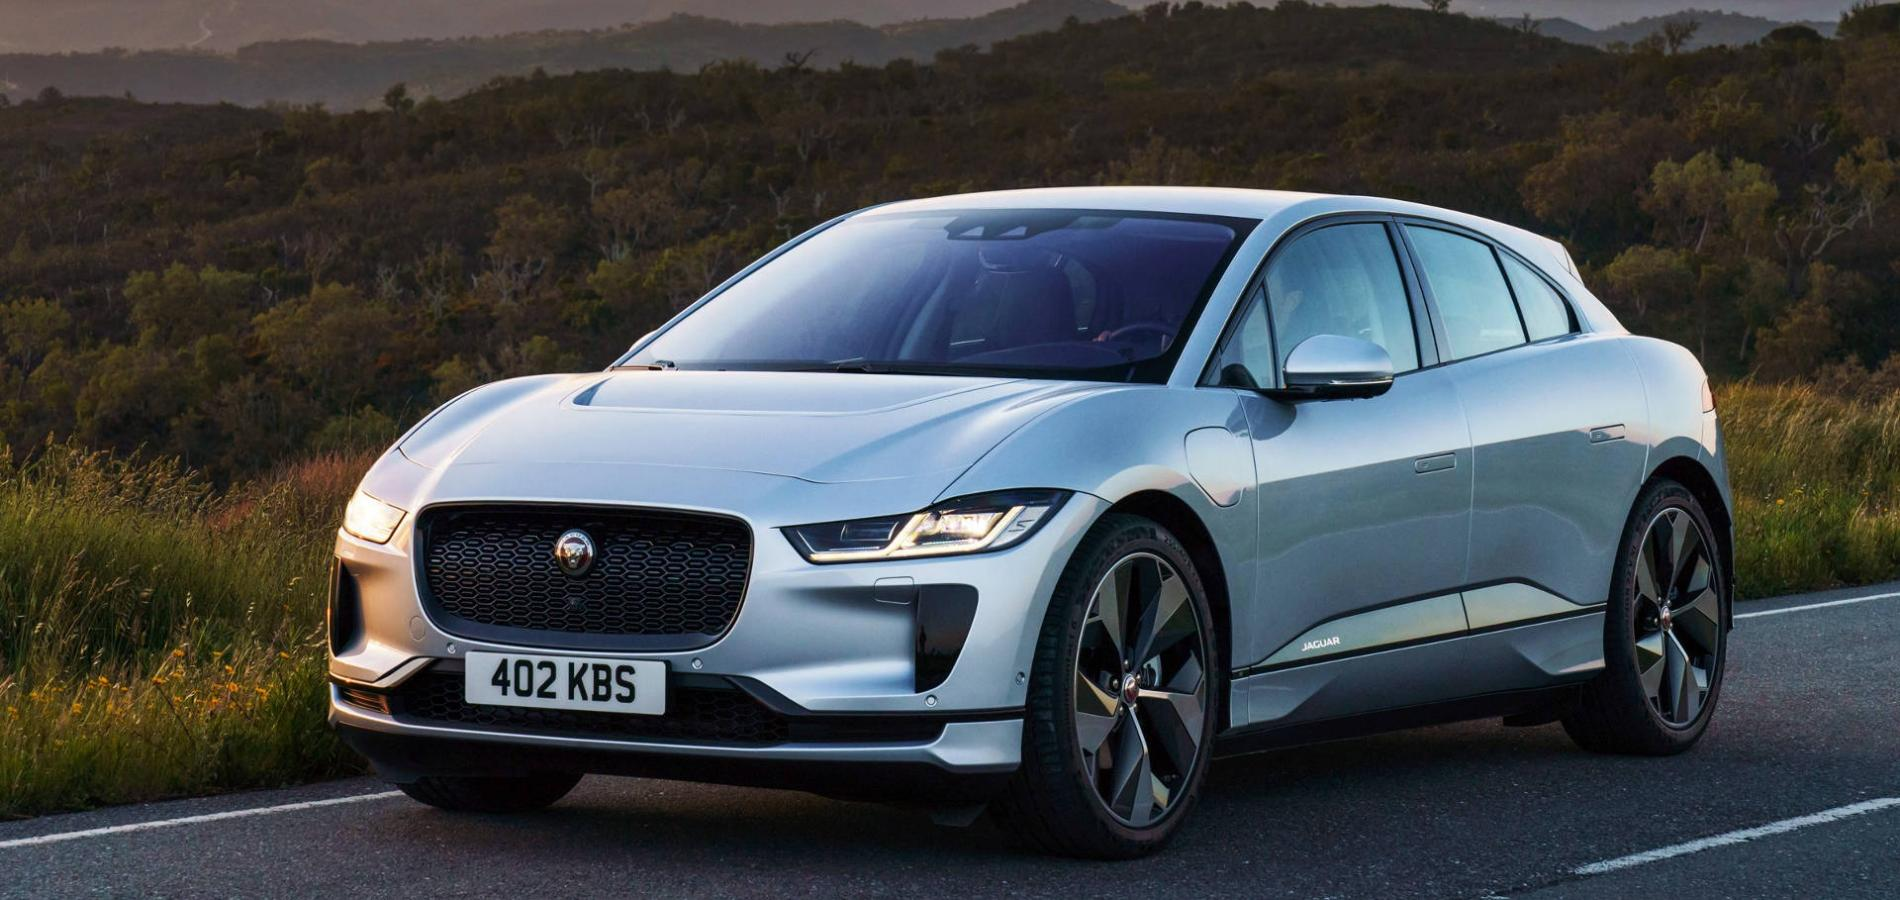 Jaguar I-Pace silver in the sunset